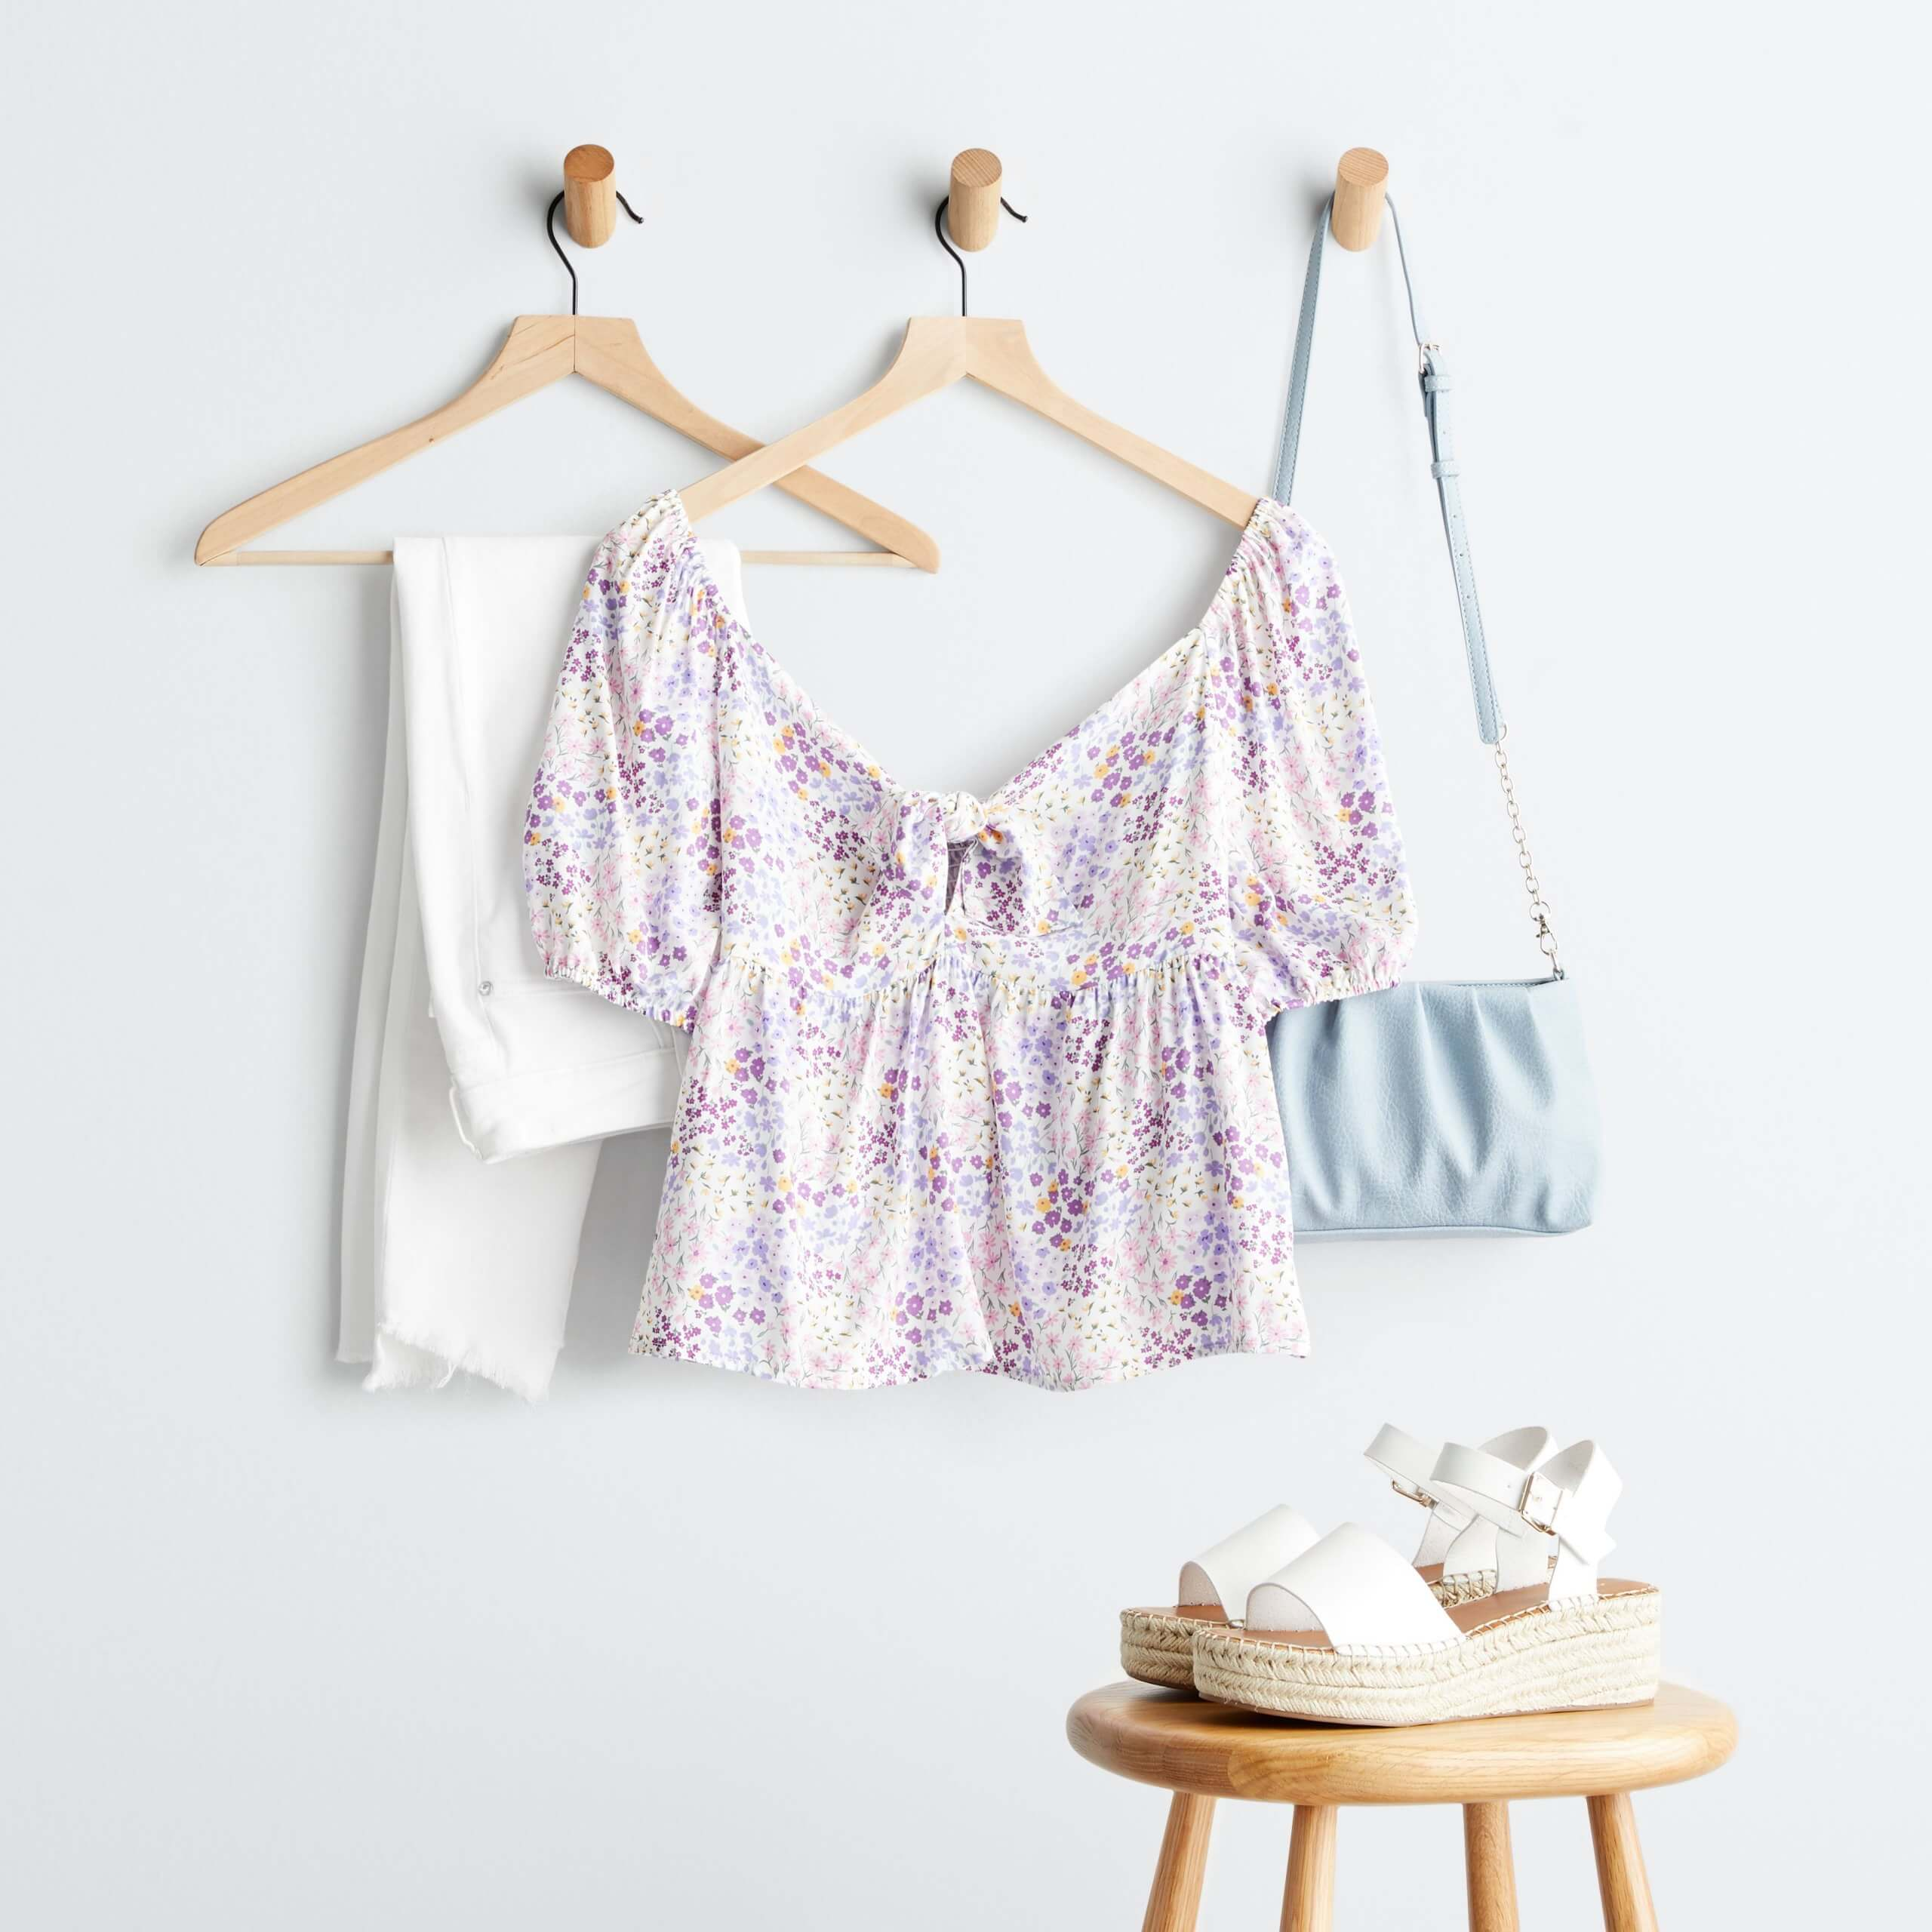 Stitch Fix Women's purple printed blouse with puff sleeves on hanger, white denim on hanger, blue purse on hanger and espadrille wedges on stool.